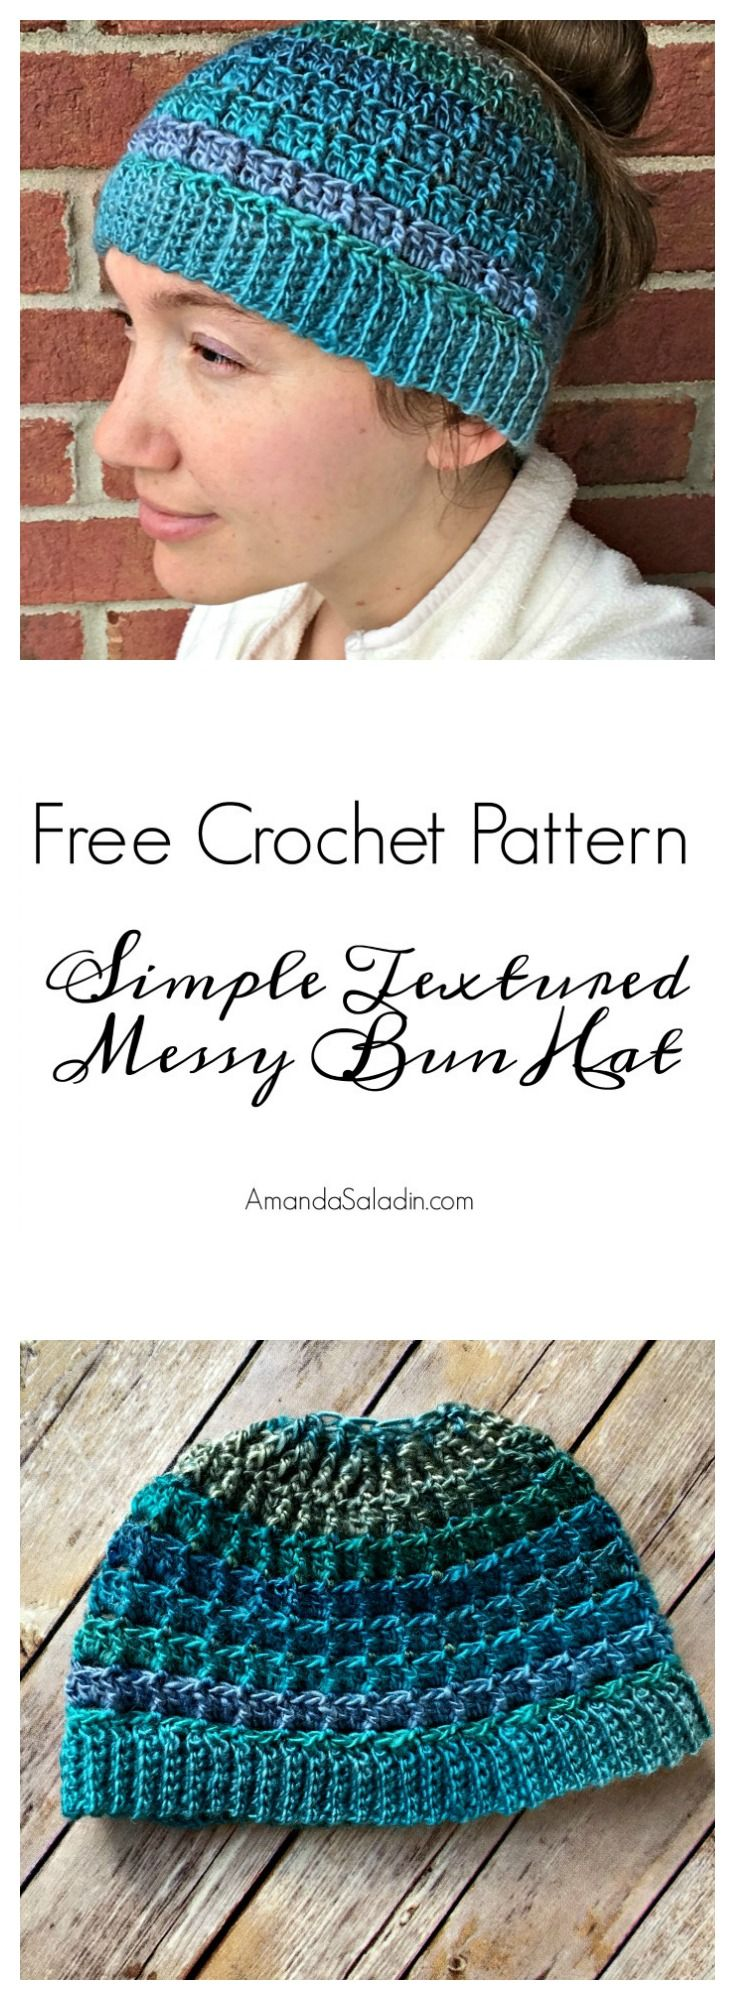 Simple Textured Messy Bun Hat - Free Crochet Pattern | Gorros ...